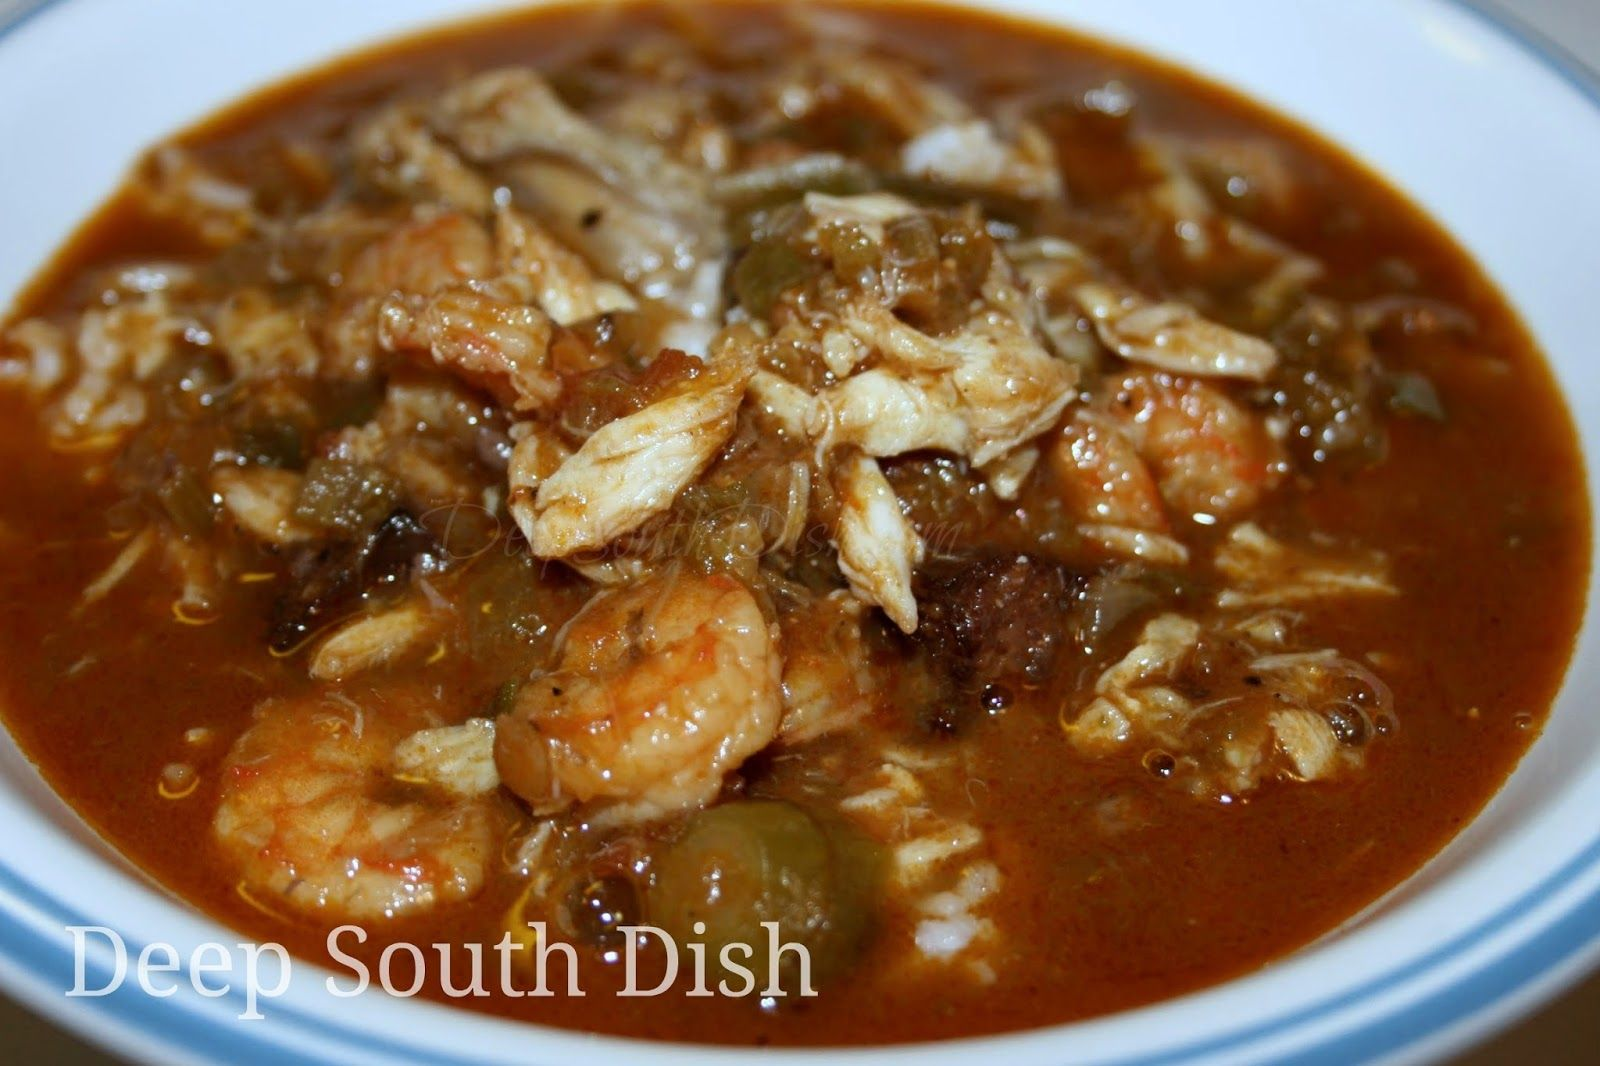 A Seafood Gumbo Made With A Dark Roux A Rich Shrimp Stock The Trinity Of Vegetables Tomatoes Andouille And Shrimp Crab And Oys Creole Recipes Seafood Gumbo Okra Gumbo